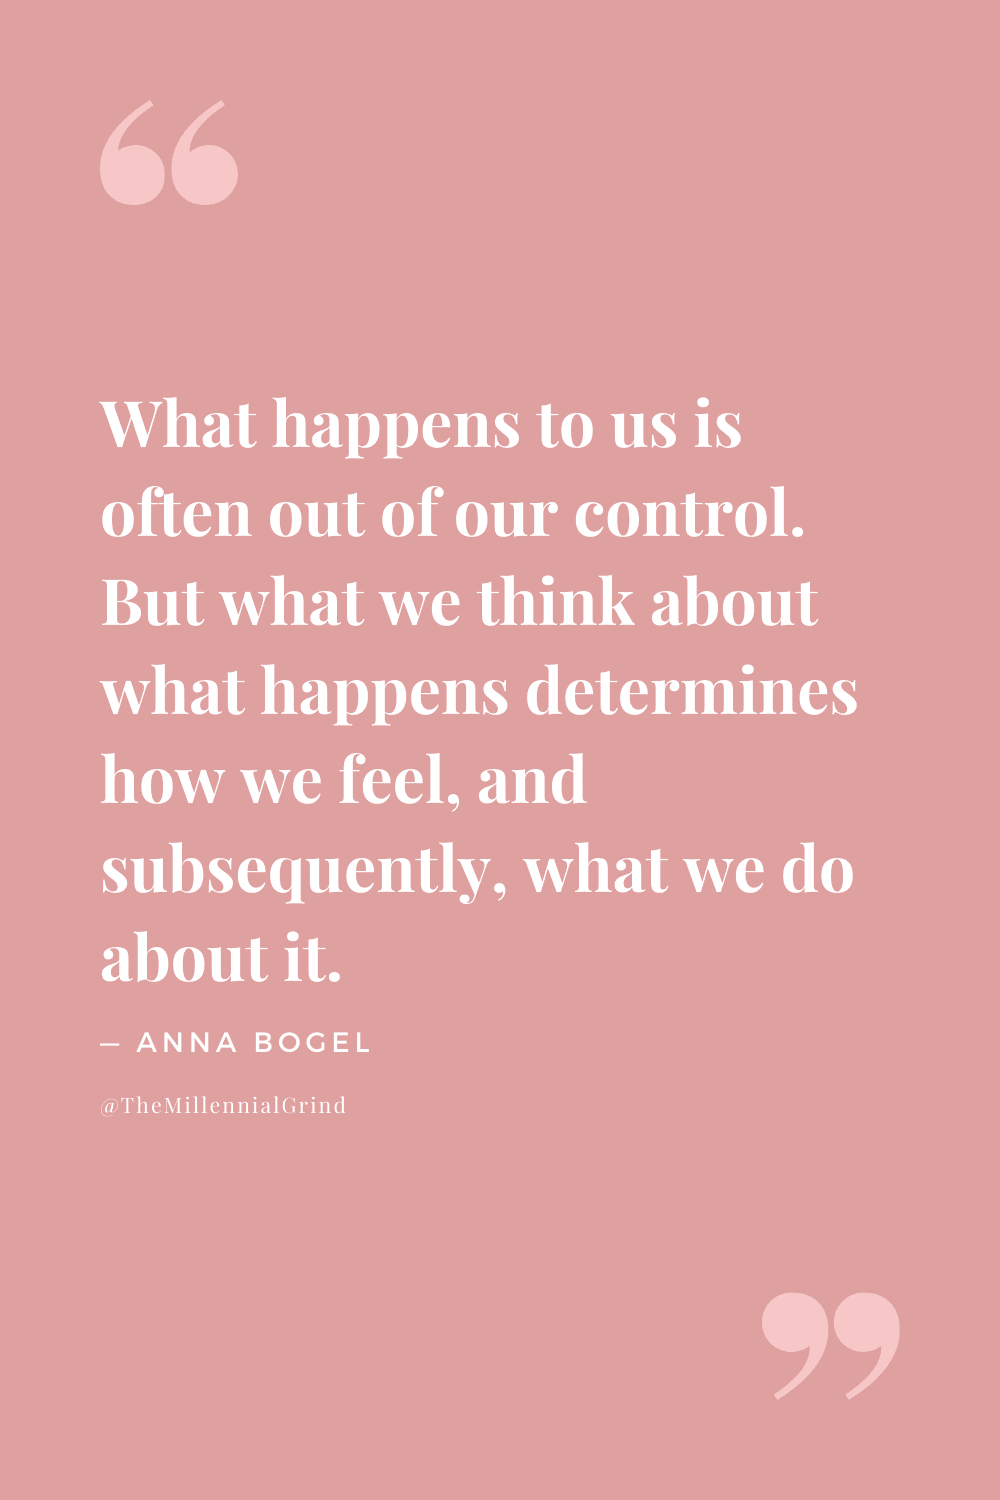 Quotes From Don't Overthink It by Anna Bogel